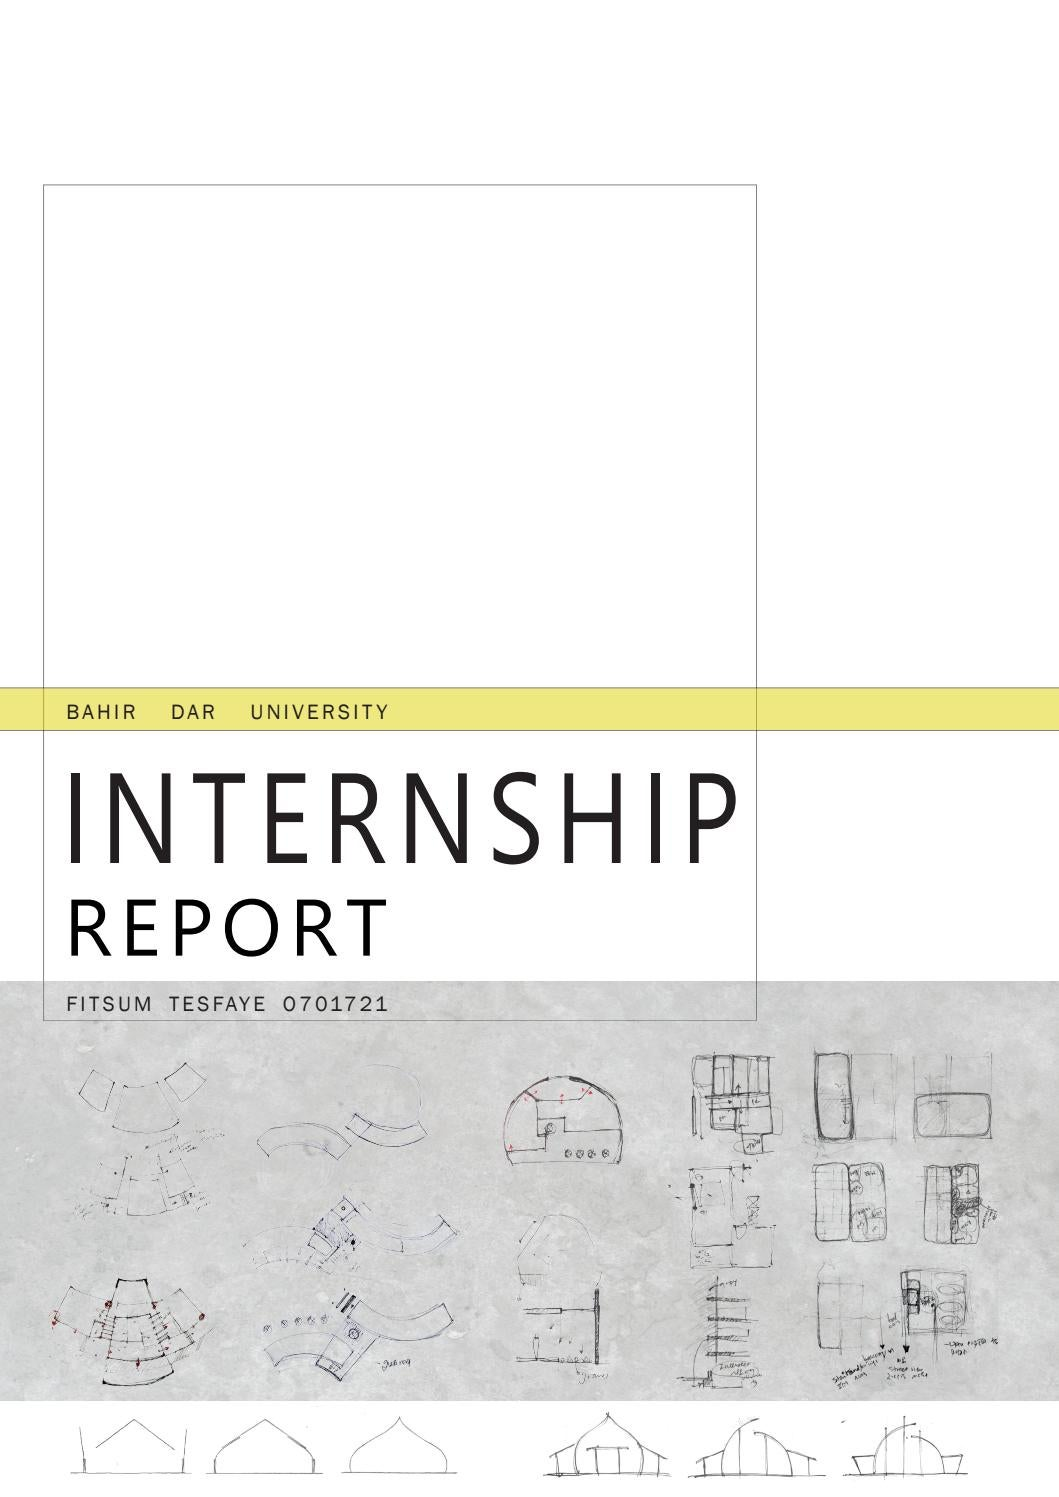 Internship Report By Fitsum Tesfaye Mamo Issuu